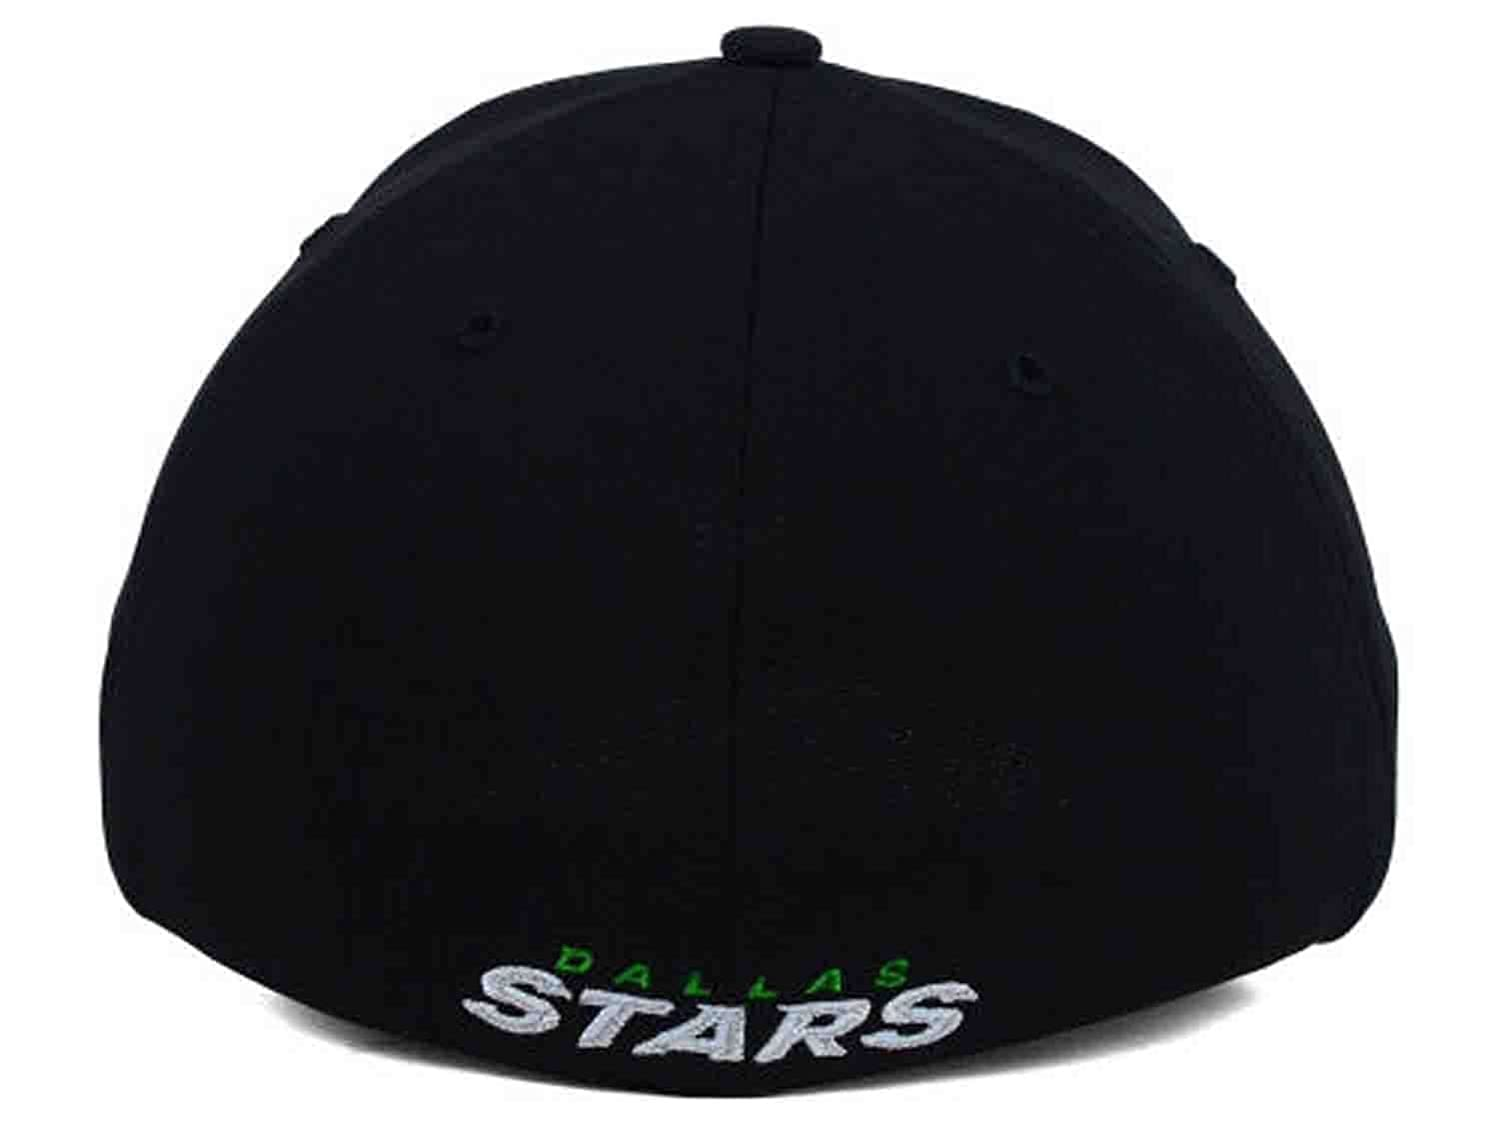 finest selection d5c66 1d3d0 ... cheapest discount 47 brand nhl dallas stars warhawk contender flexfit hat  cap small medium amazon sports